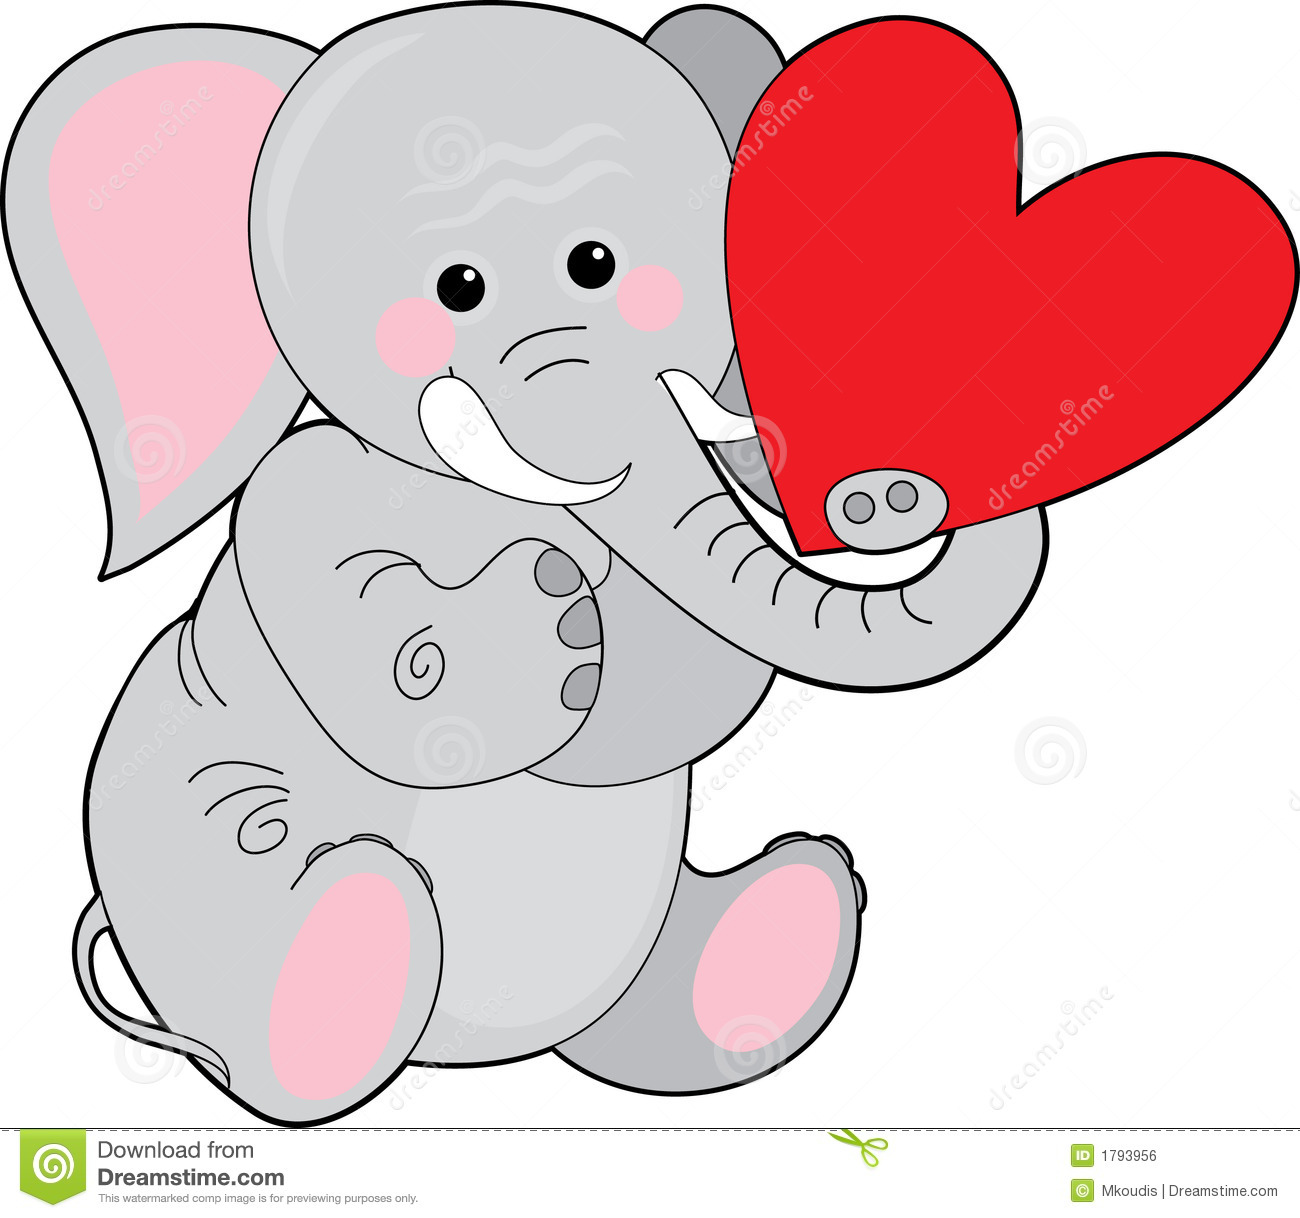 Elephant with hearts clipart picture download Elephant with heart clipart - ClipartFest picture download